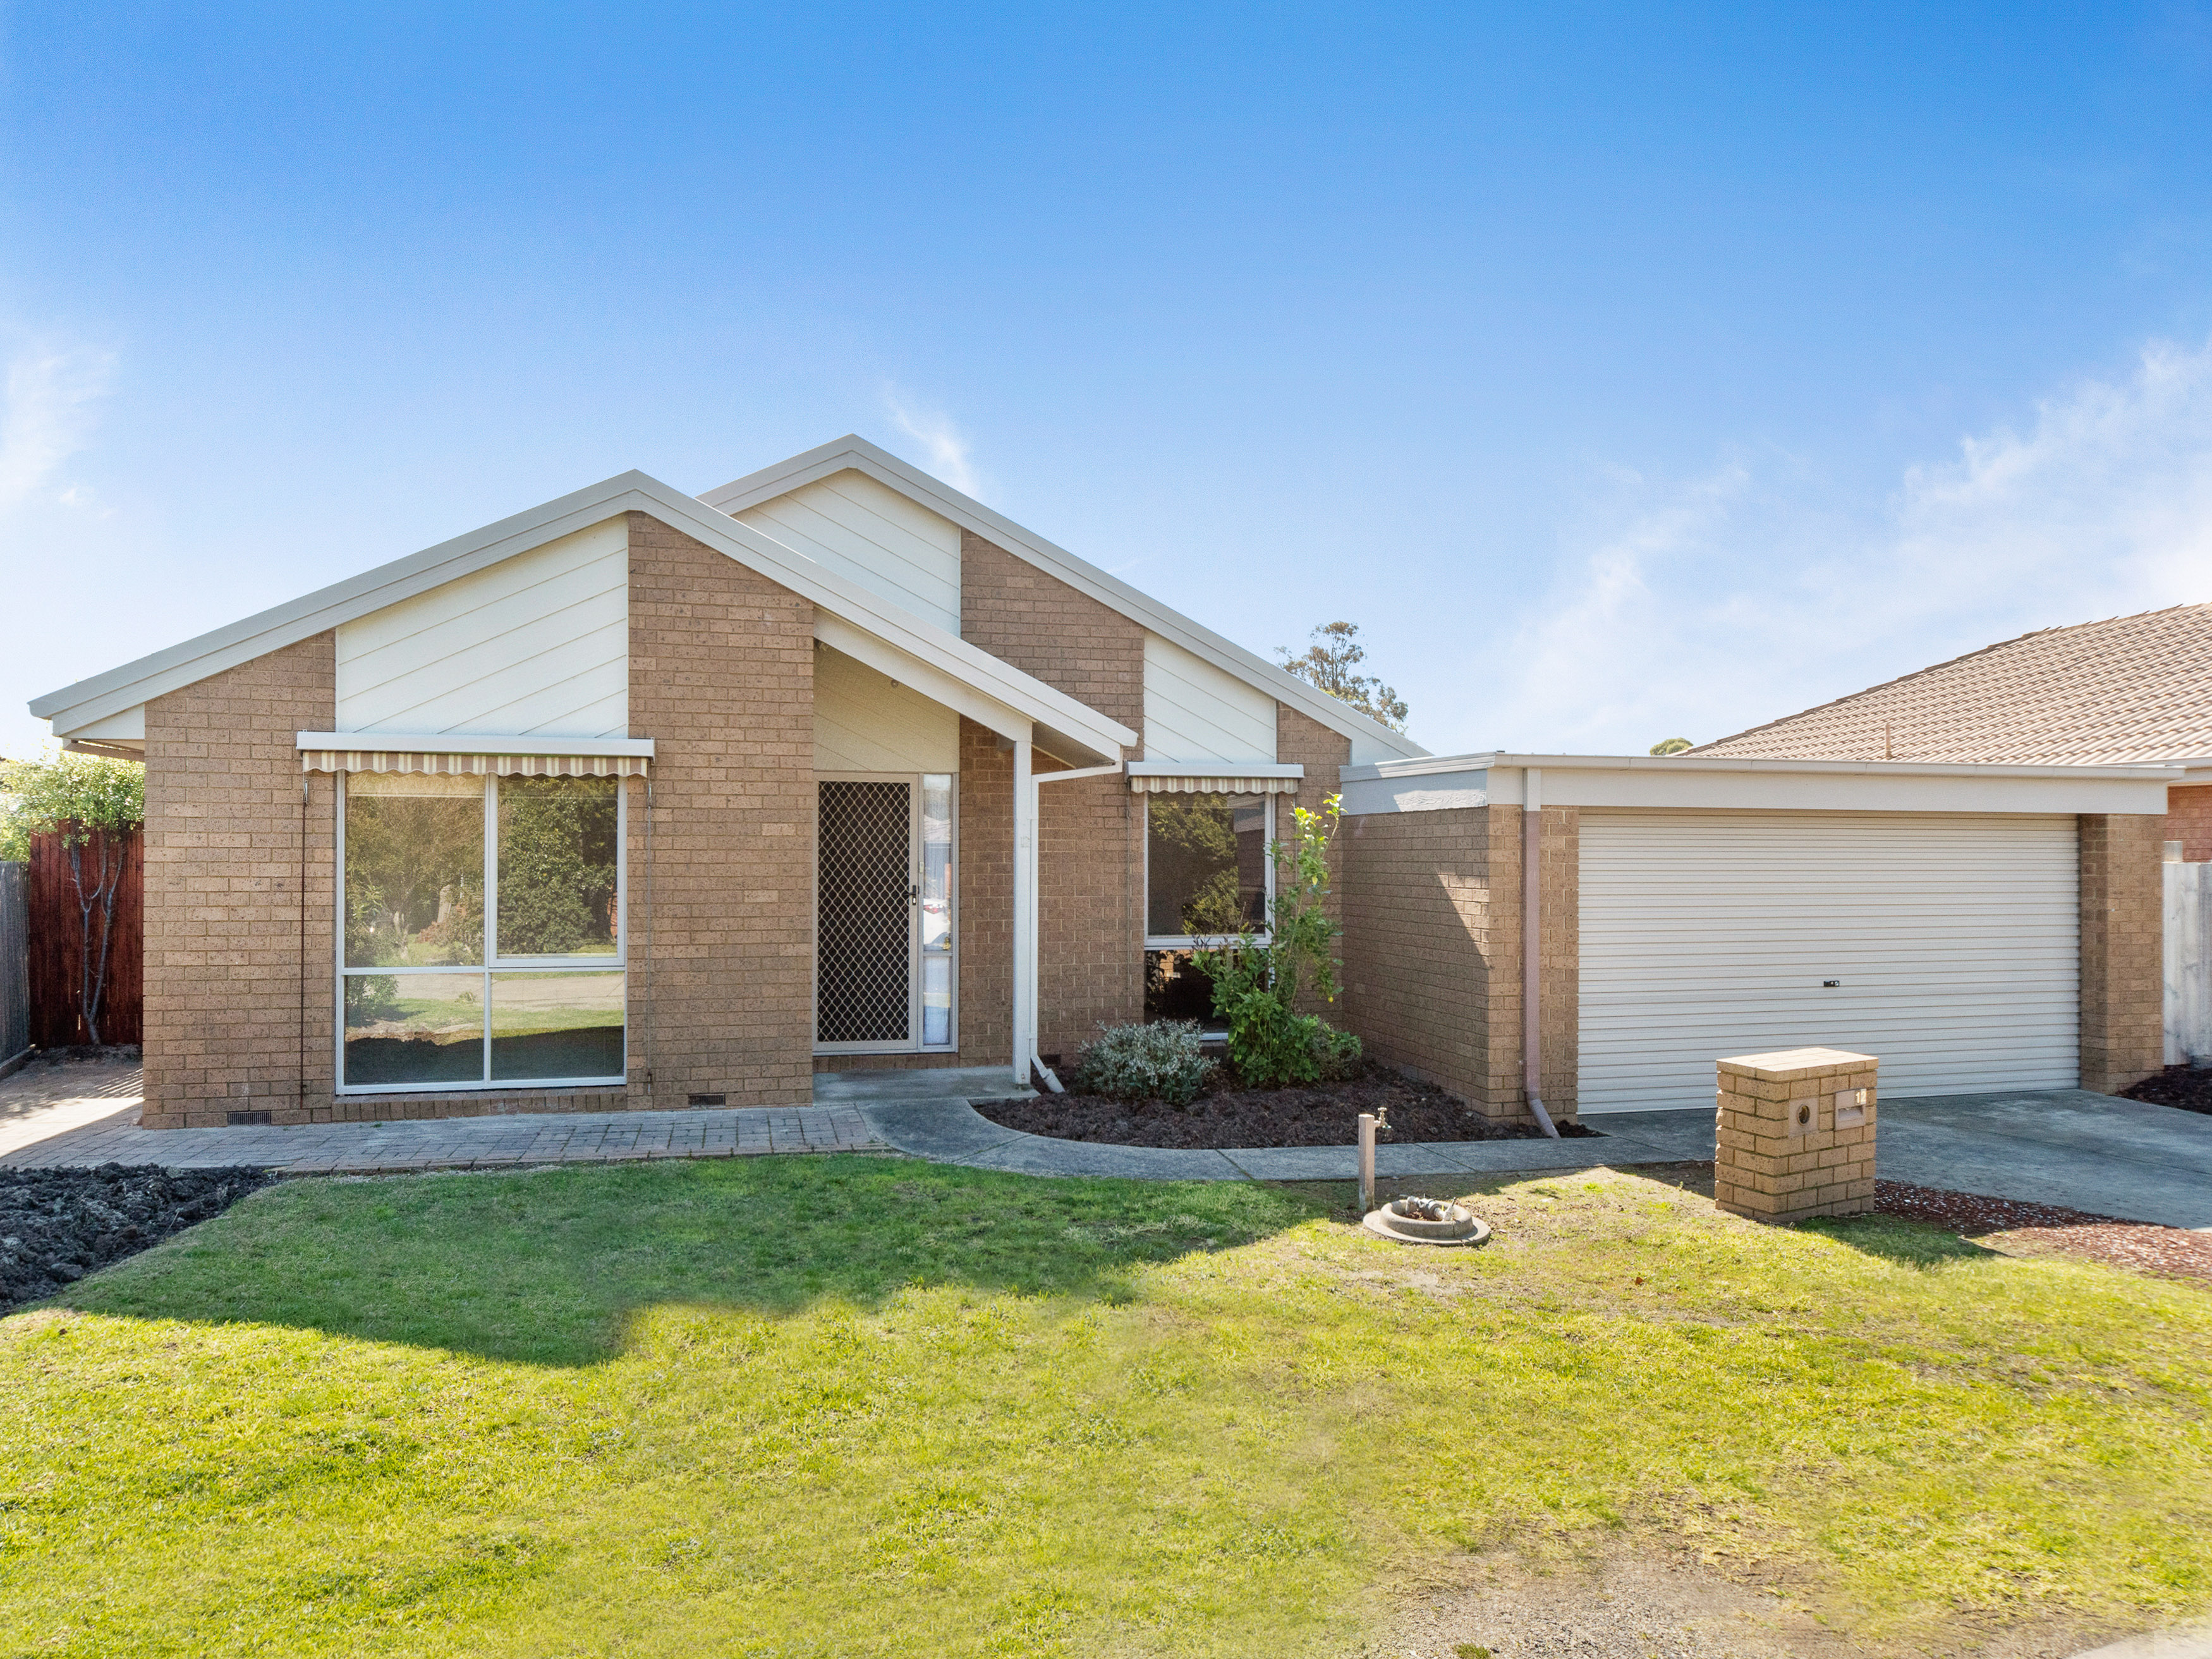 12 Bluegrass Walk, FRANKSTON, VIC, 3199 - Image